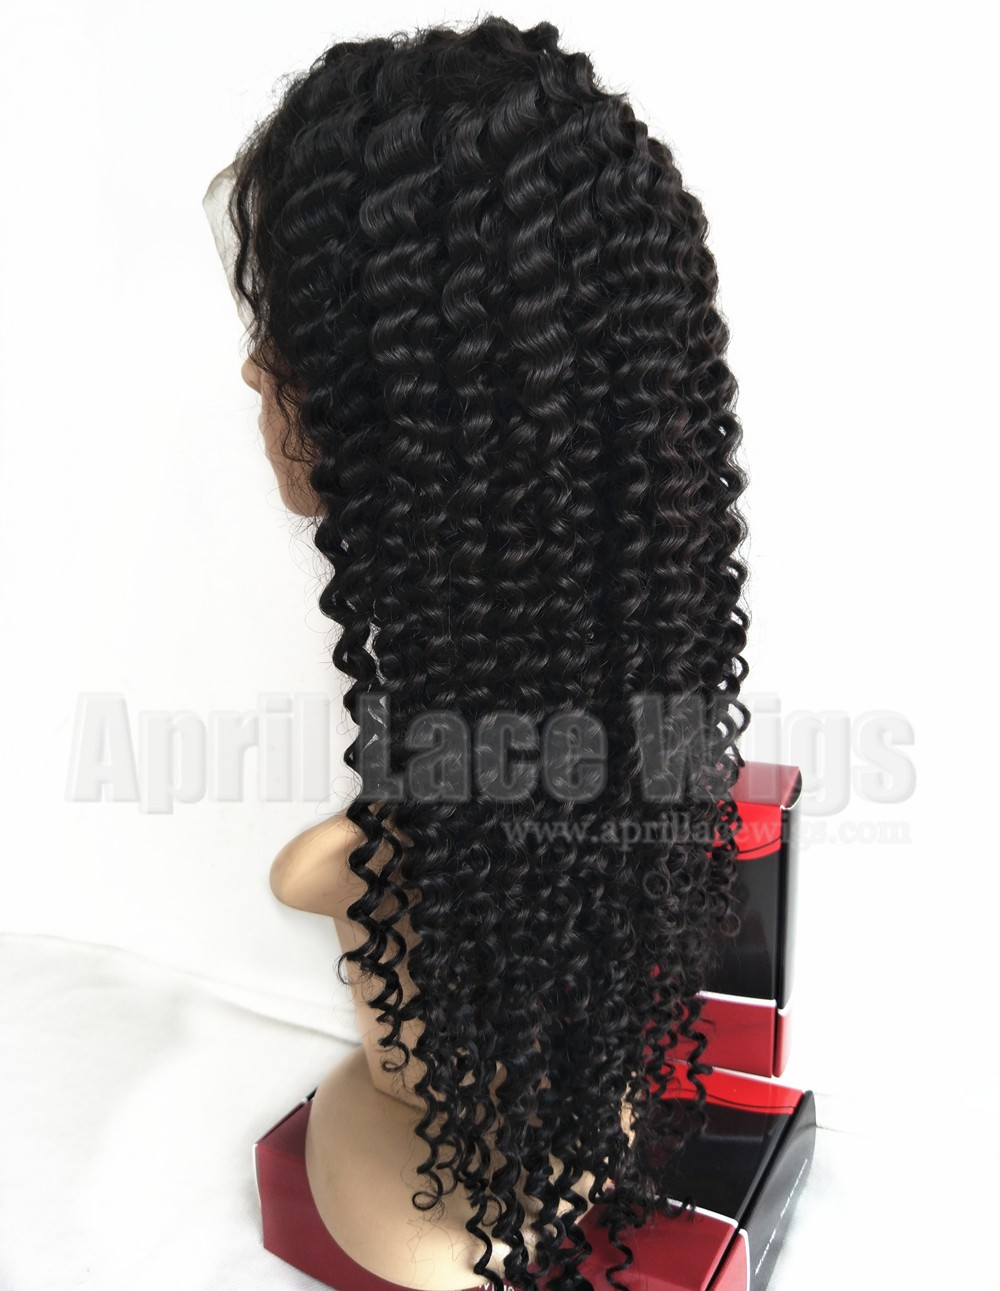 Spanish curly 360 lace wig